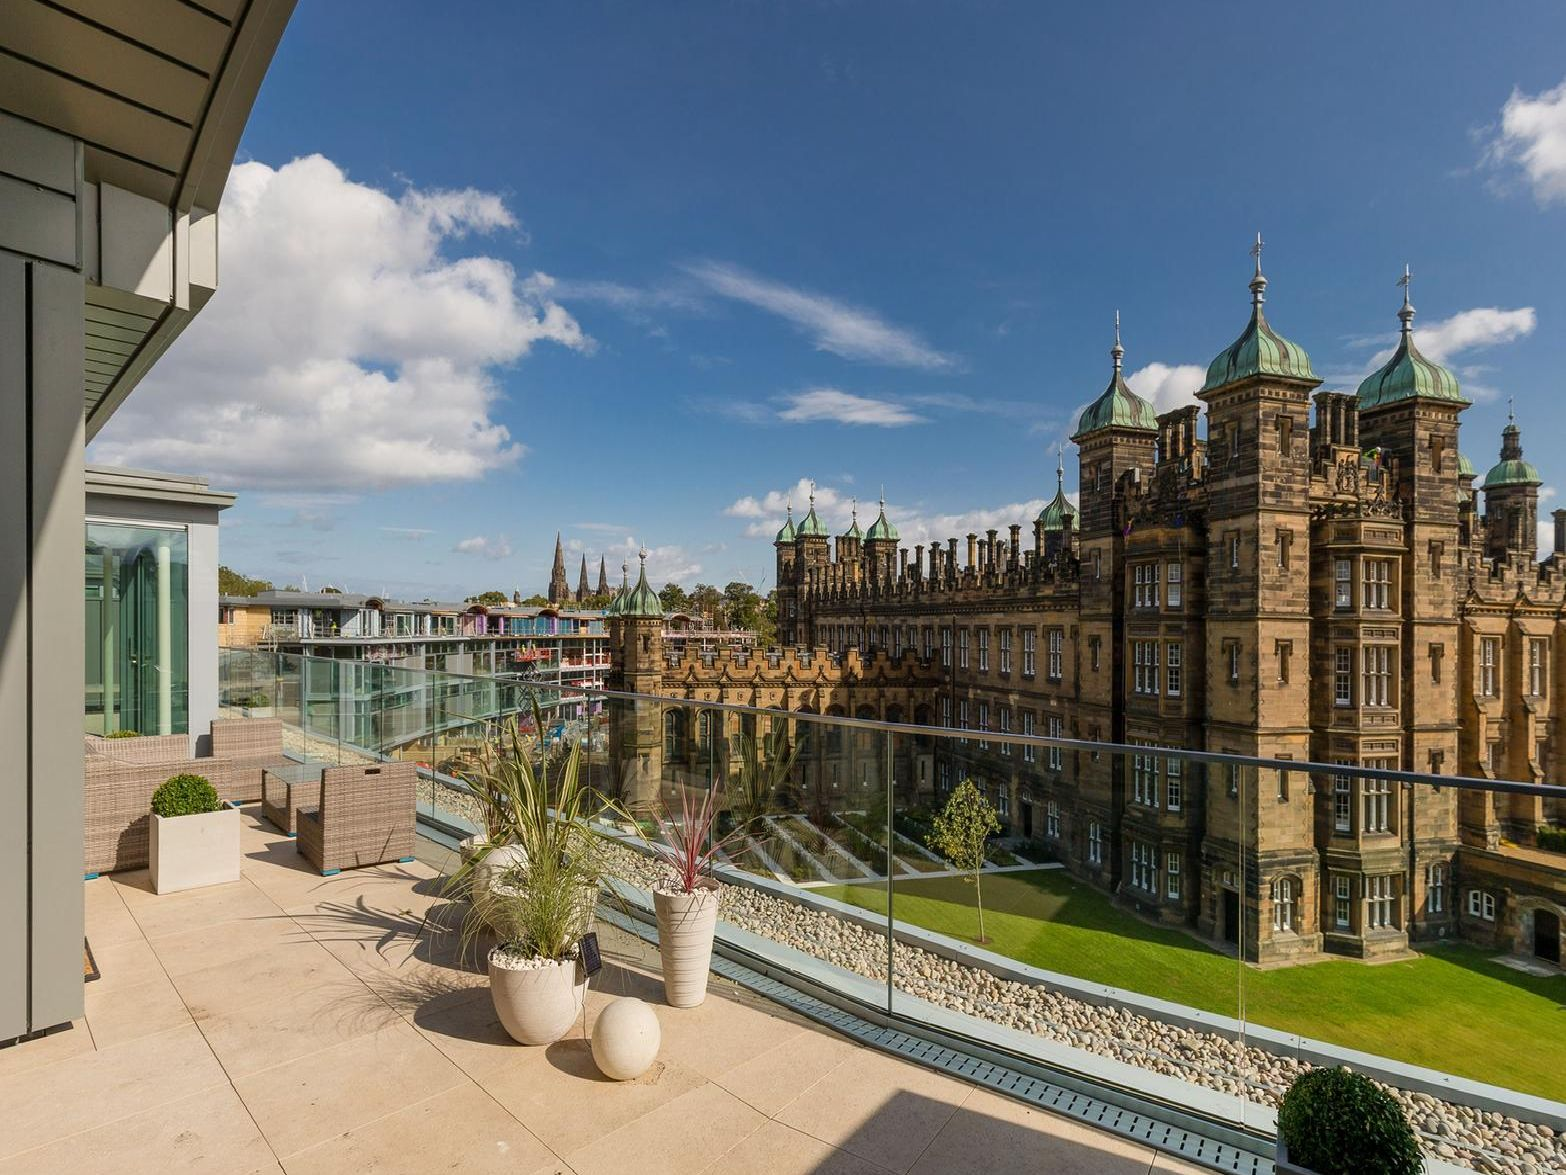 The flat has a breathtaking view of the school from its balcony